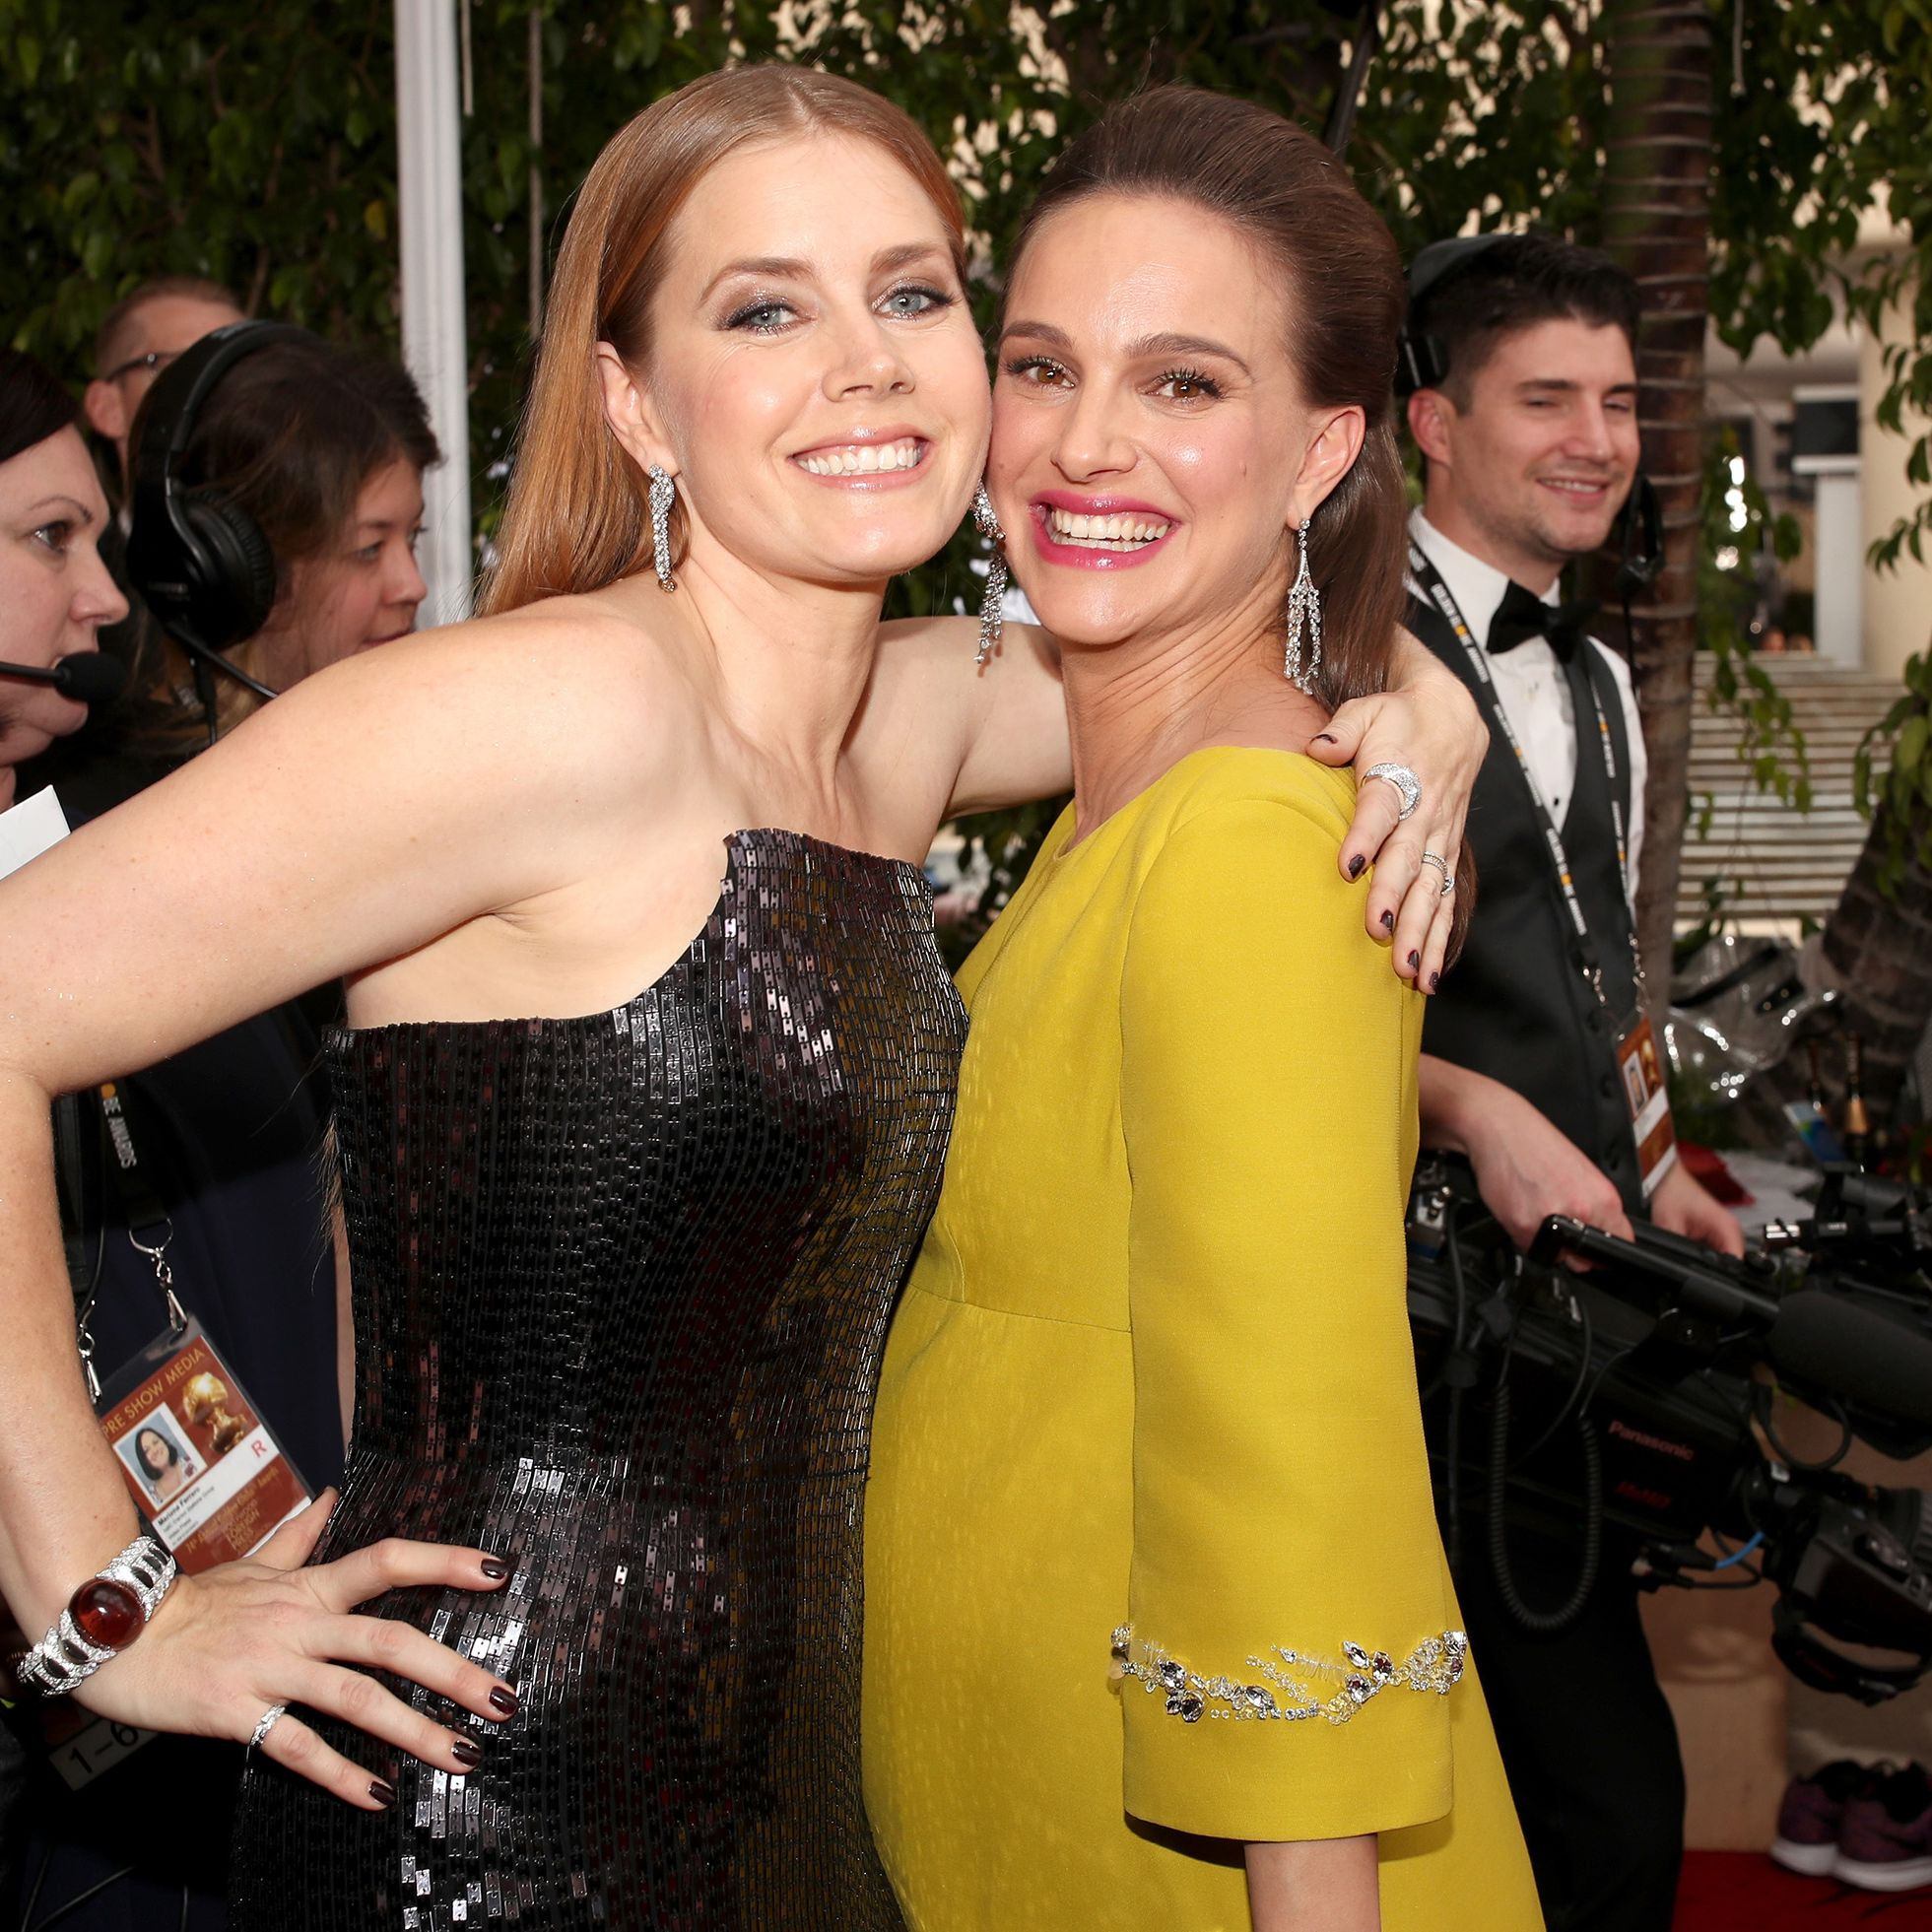 BEVERLY HILLS, CA - JANUARY 08:  74th ANNUAL GOLDEN GLOBE AWARDS -- Pictured:  Actors Amy Adams and Natalie Portman arrive to the 74th Annual Golden Globe Awards held at the Beverly Hilton Hotel on January 8, 2017.  (Photo by Christopher Polk/NBC/NBCU Photo Bank via Getty Images)